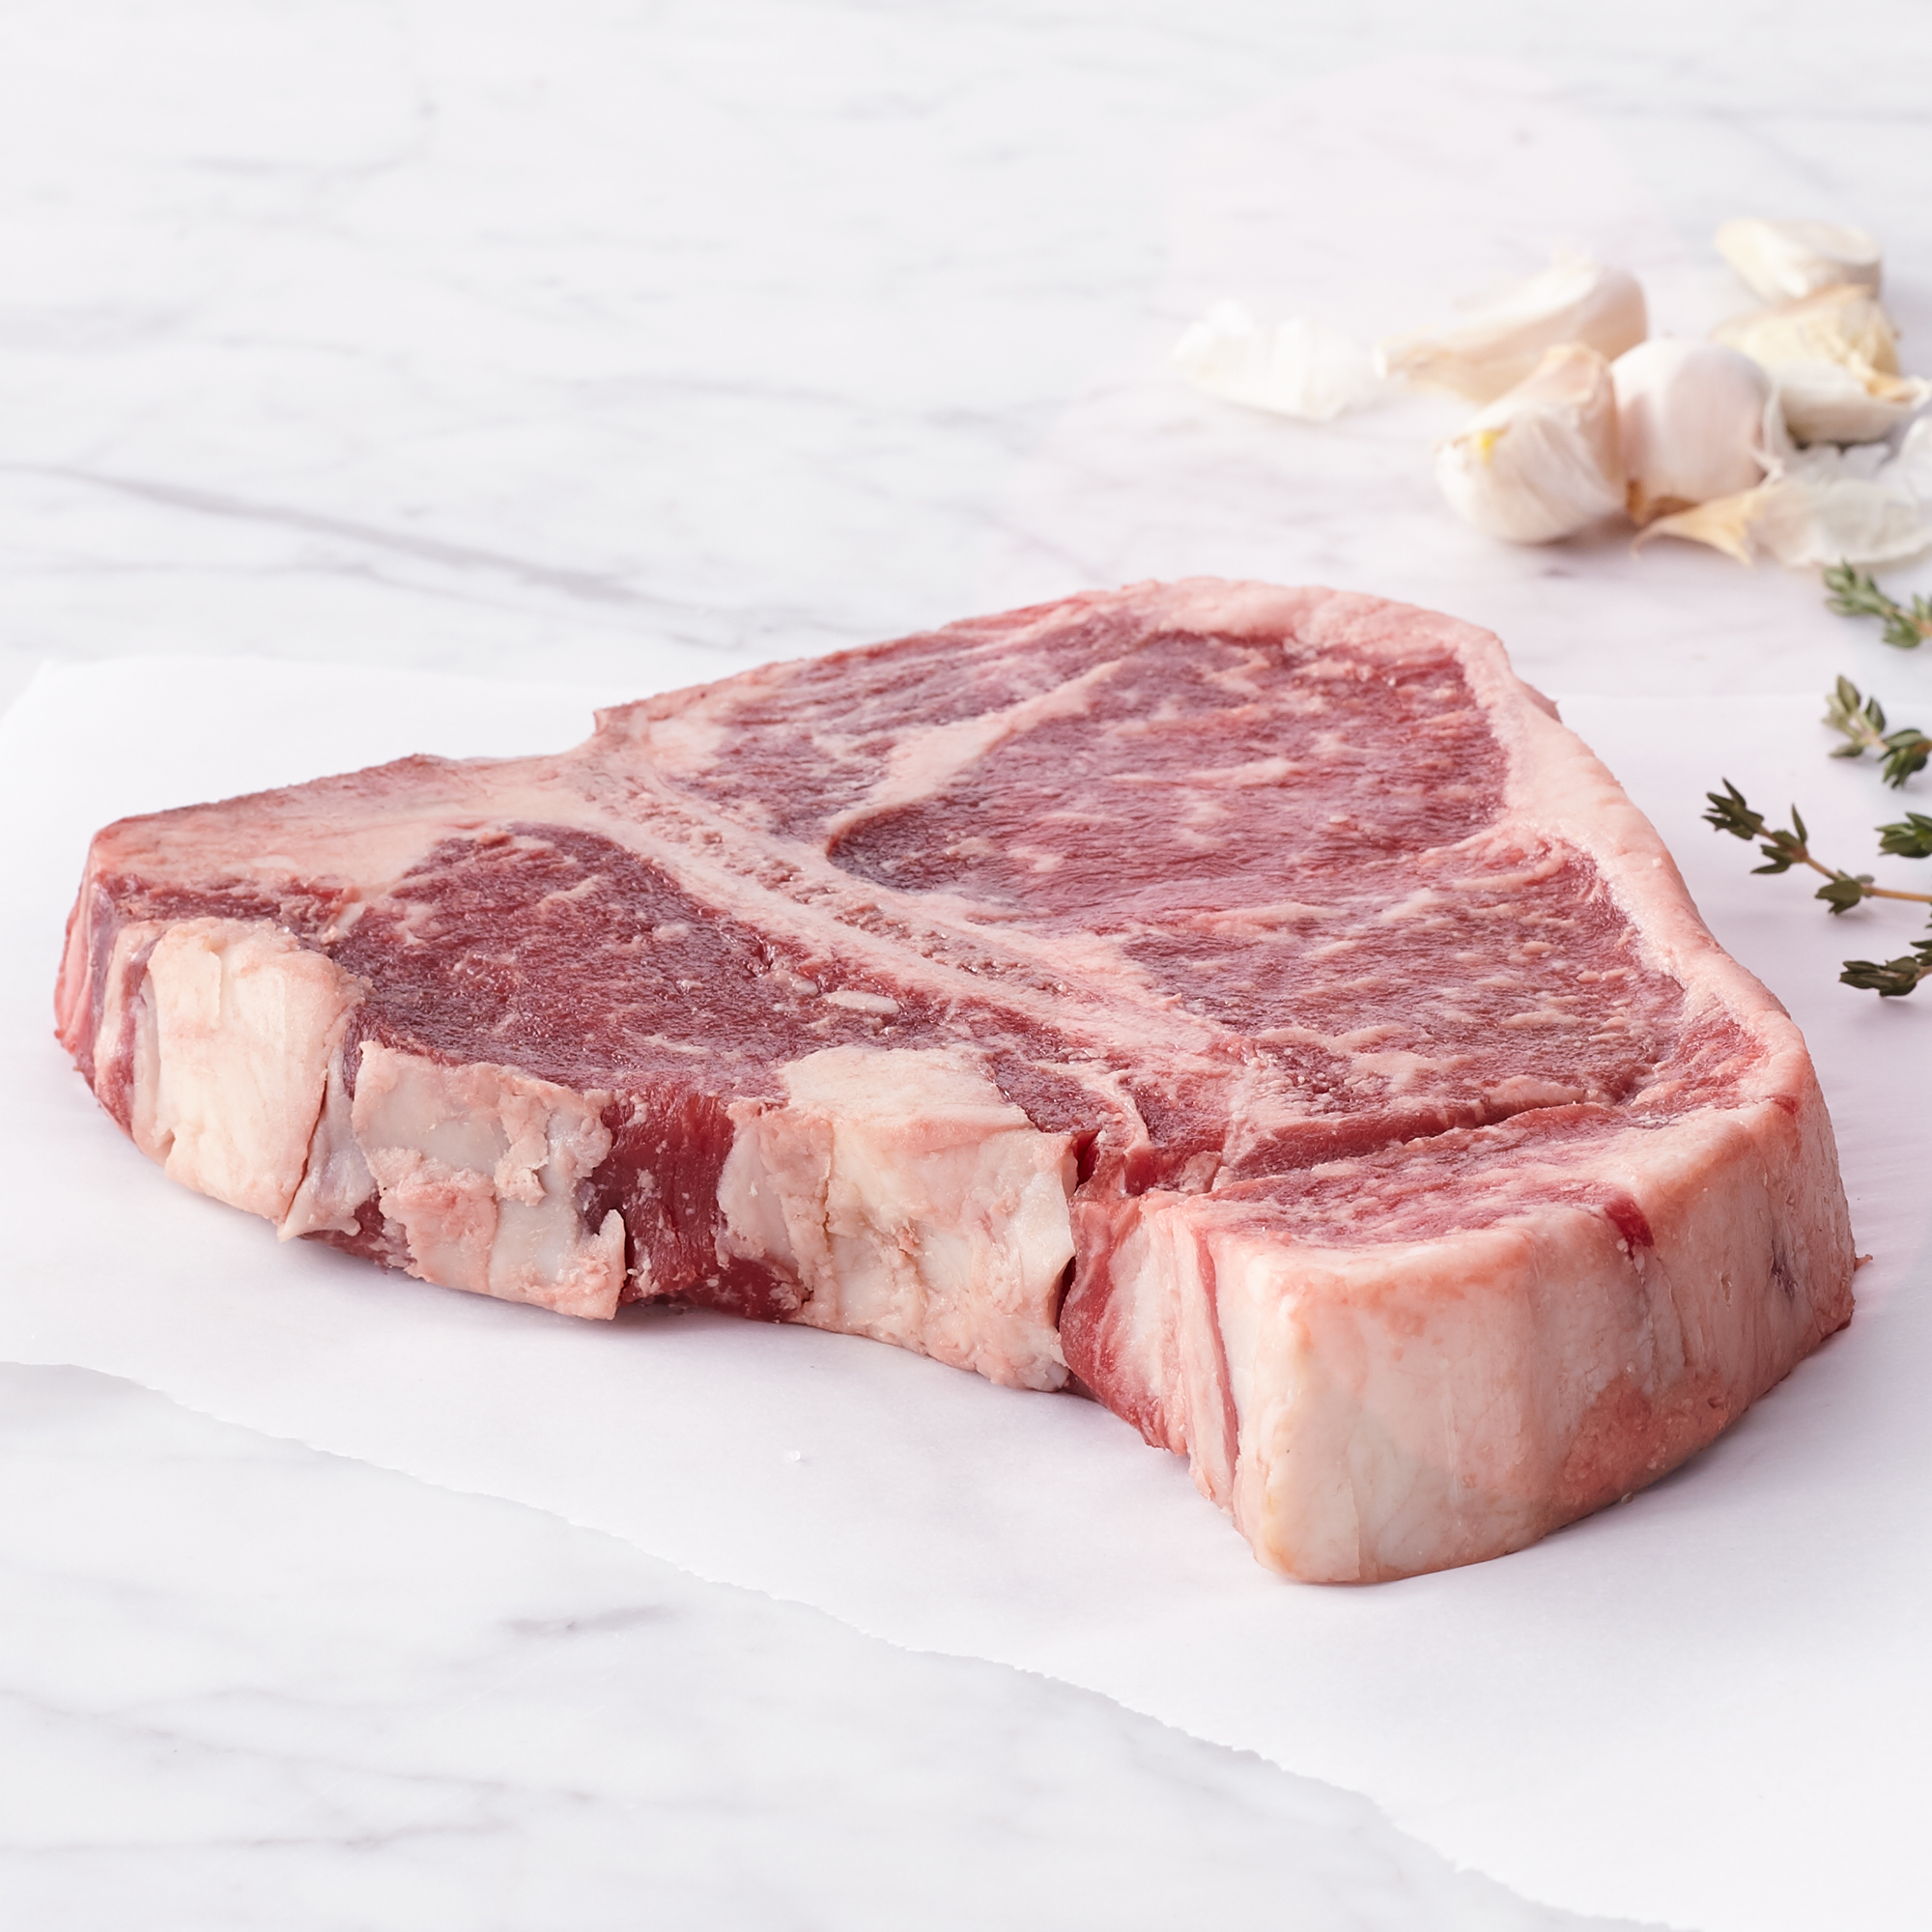 4 ct. 16 oz. Porterhouse Premium Steaks - ships frozen and raw